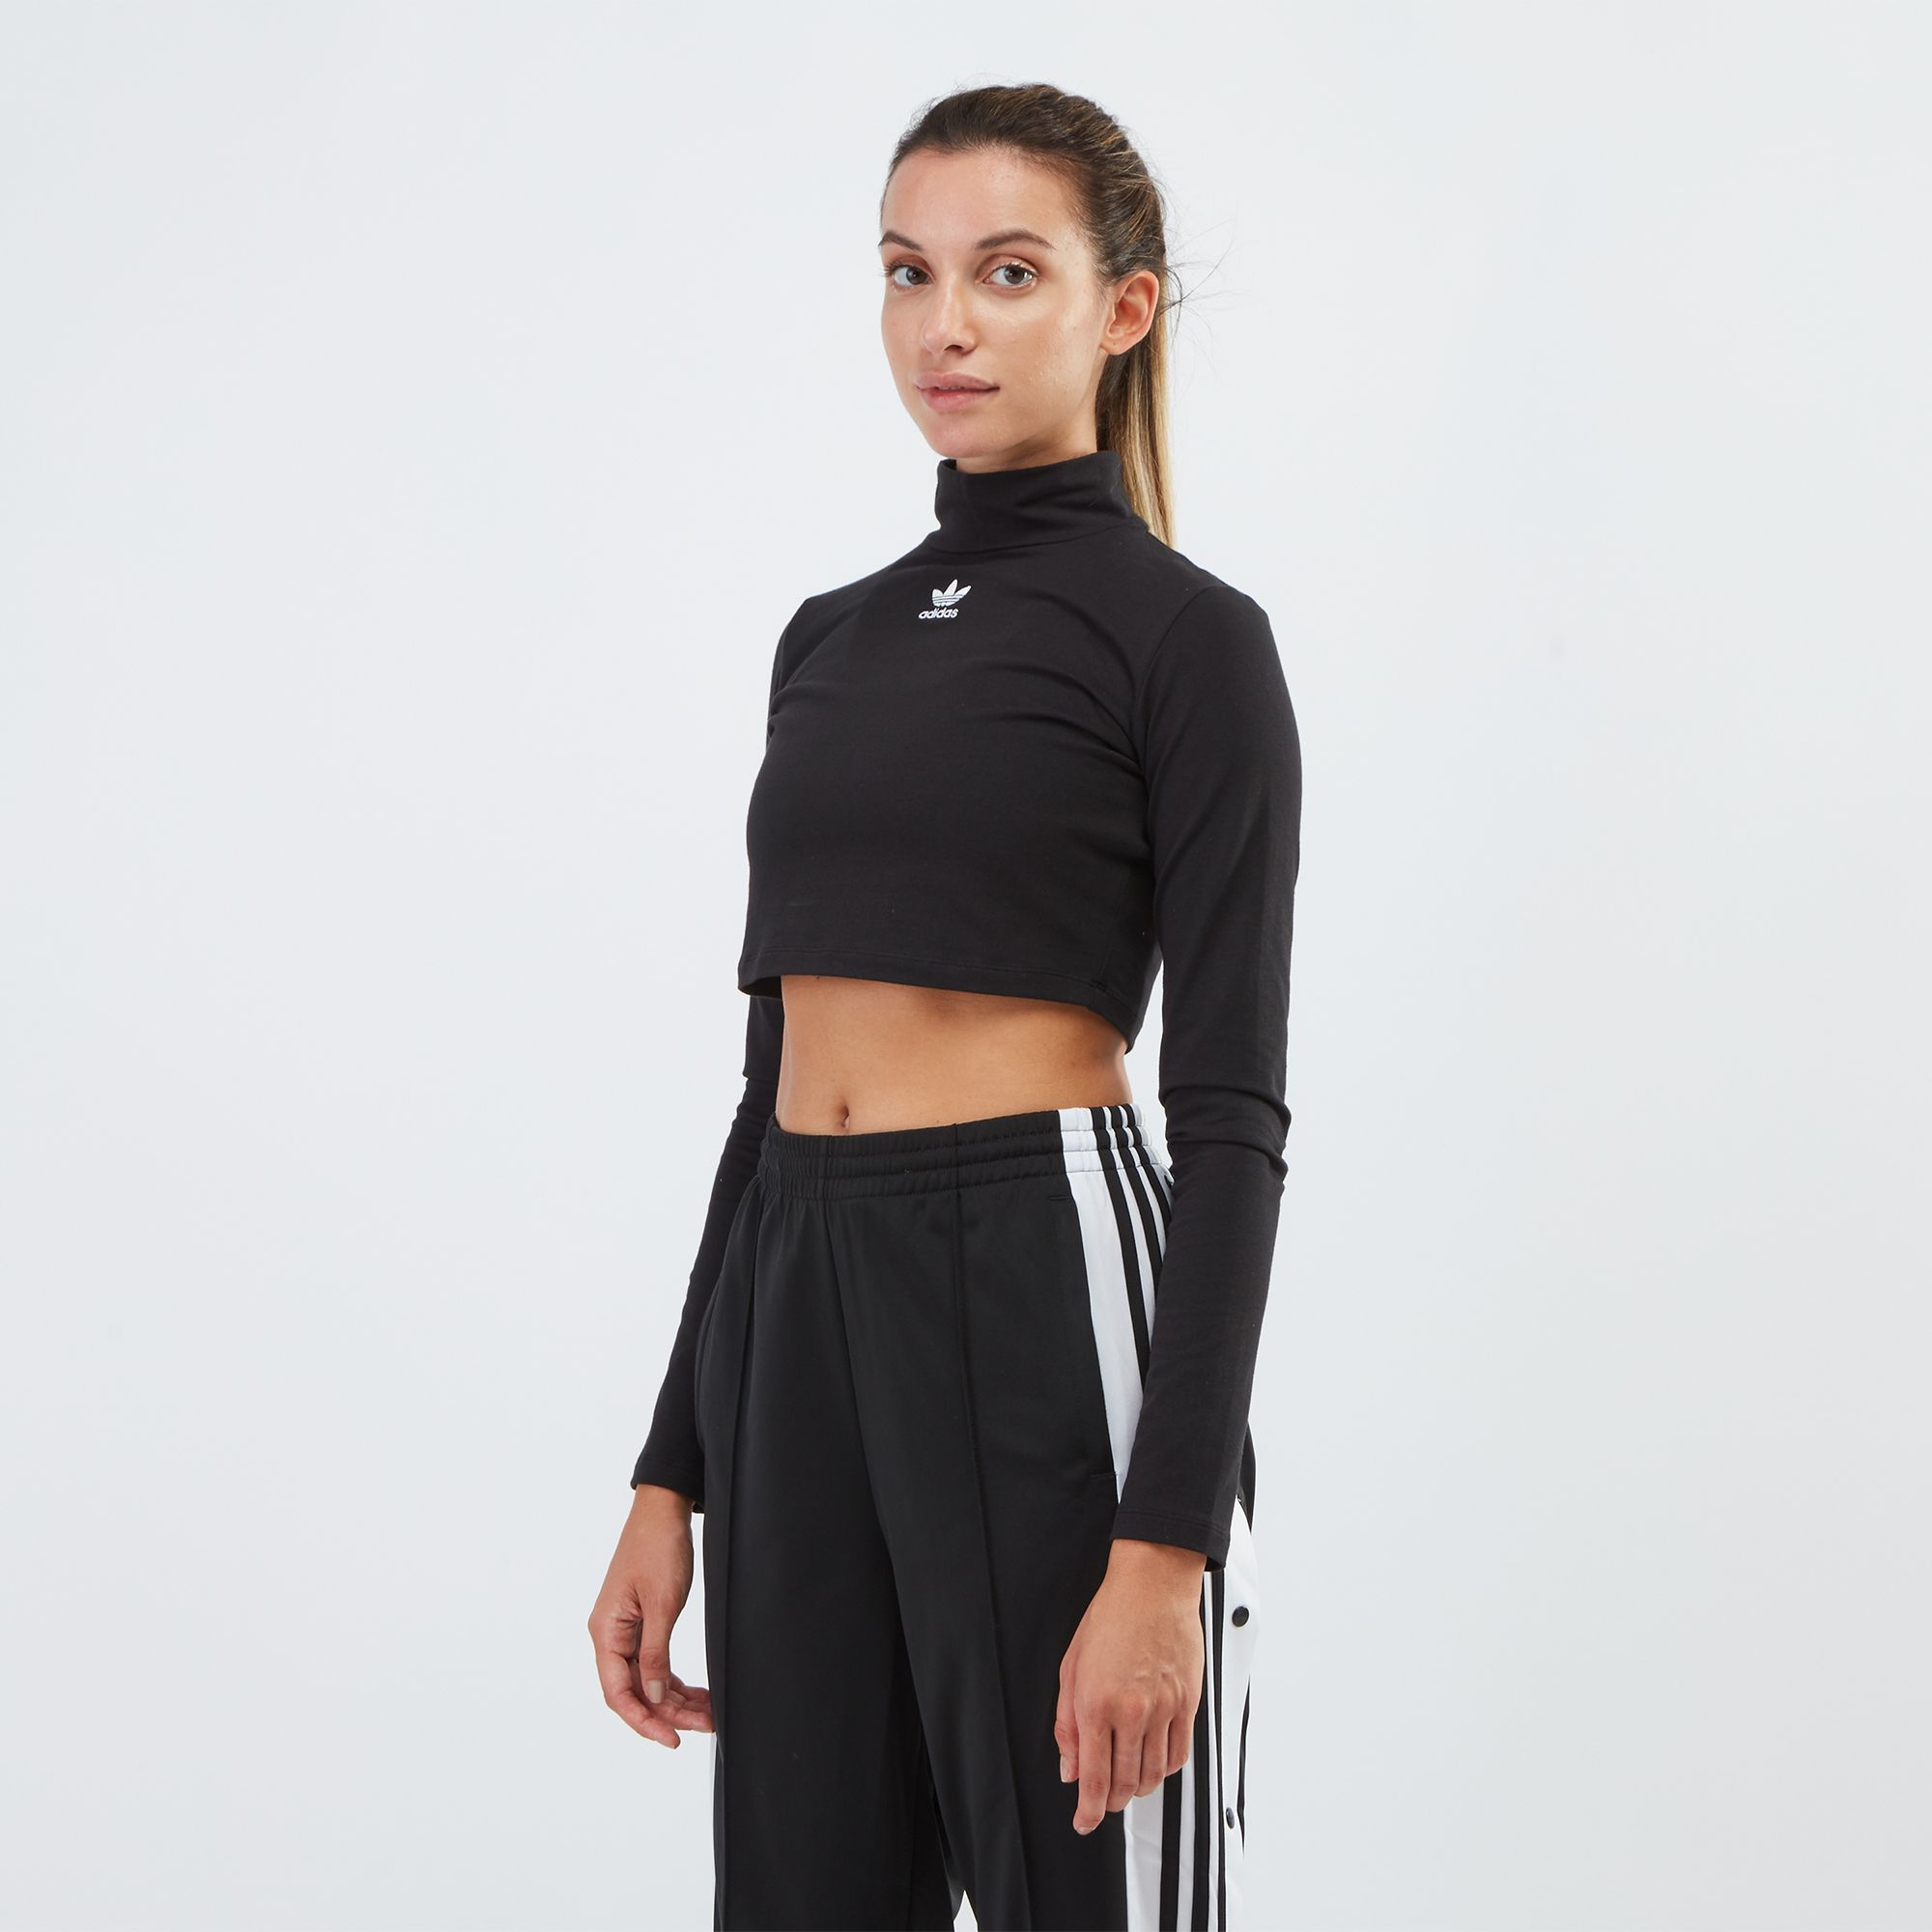 9c2fb603a54 adidas Originals Styling Complements Long Sleeve Crop Top | T-Shirts ...